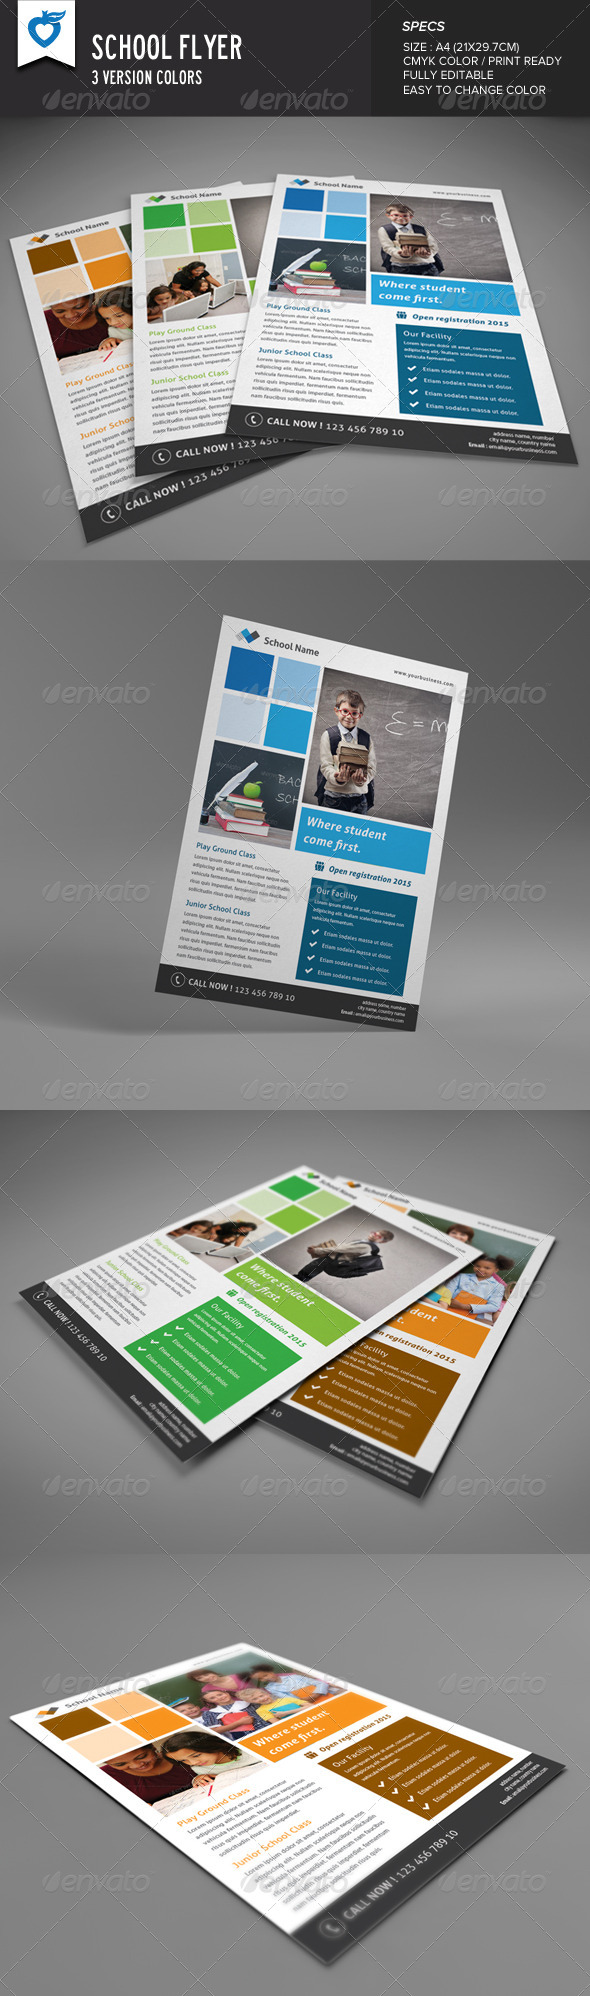 GraphicRiver School Flyer 8678525